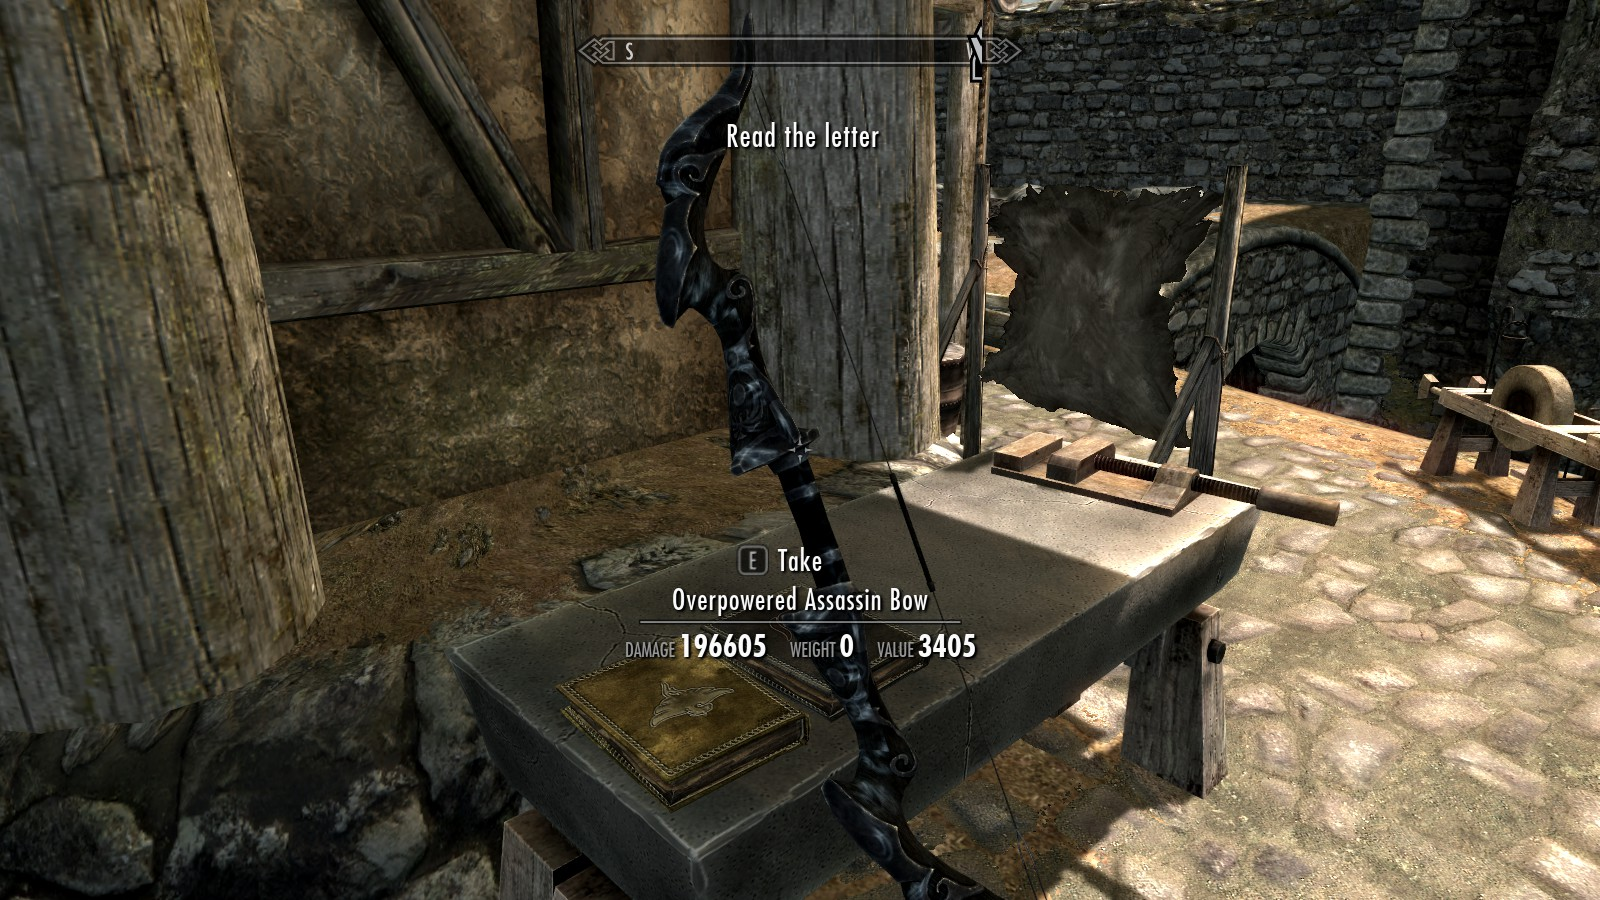 Overpowered assassin bow